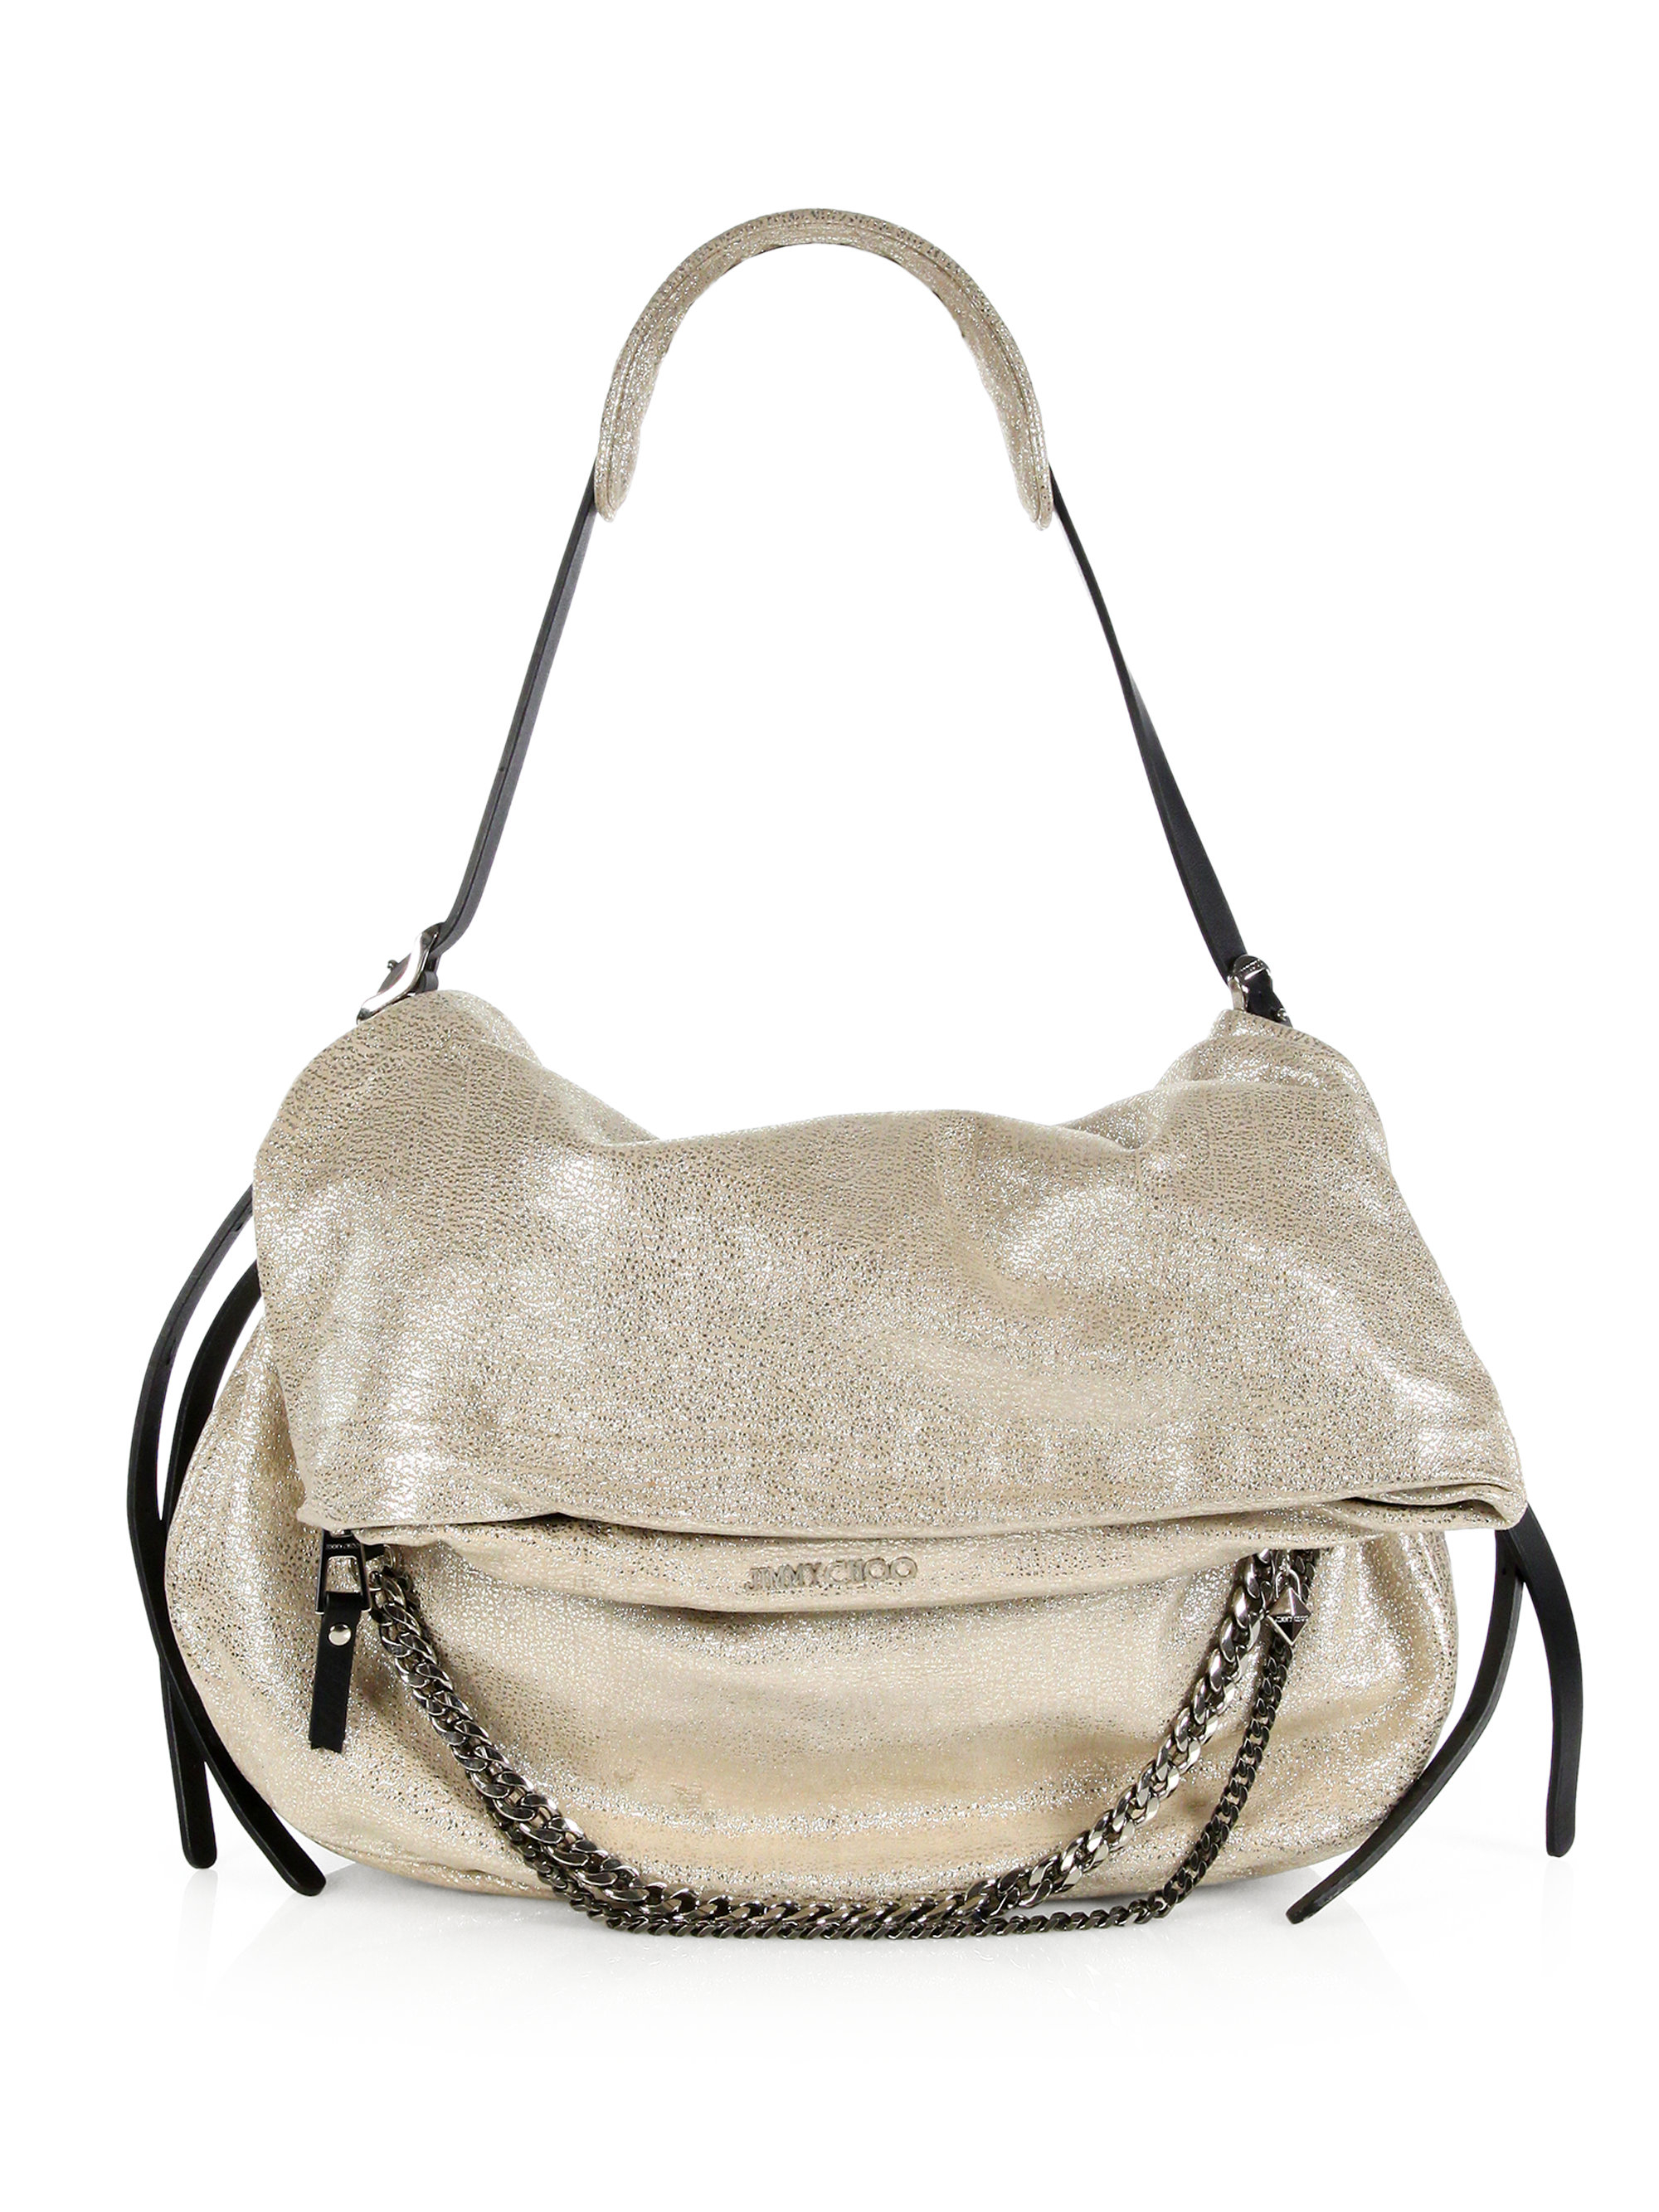 5eddac91de Jimmy Choo Biker Metallic Leather Shoulder Bag in Metallic - Lyst